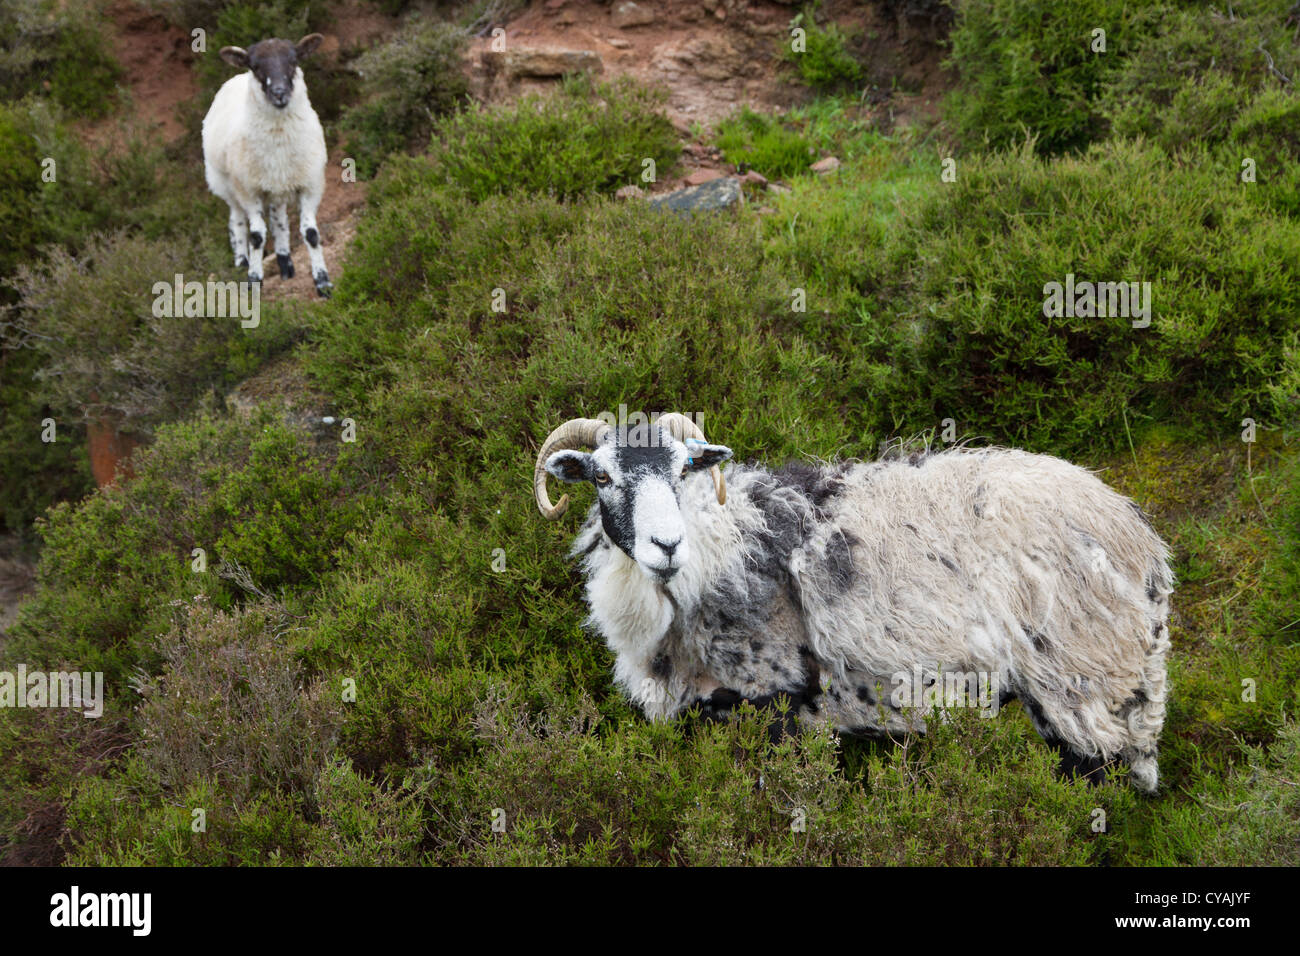 Swaledale sheep, ewe and lamb on Stanton Moor, Peak District National Park, England - Stock Image